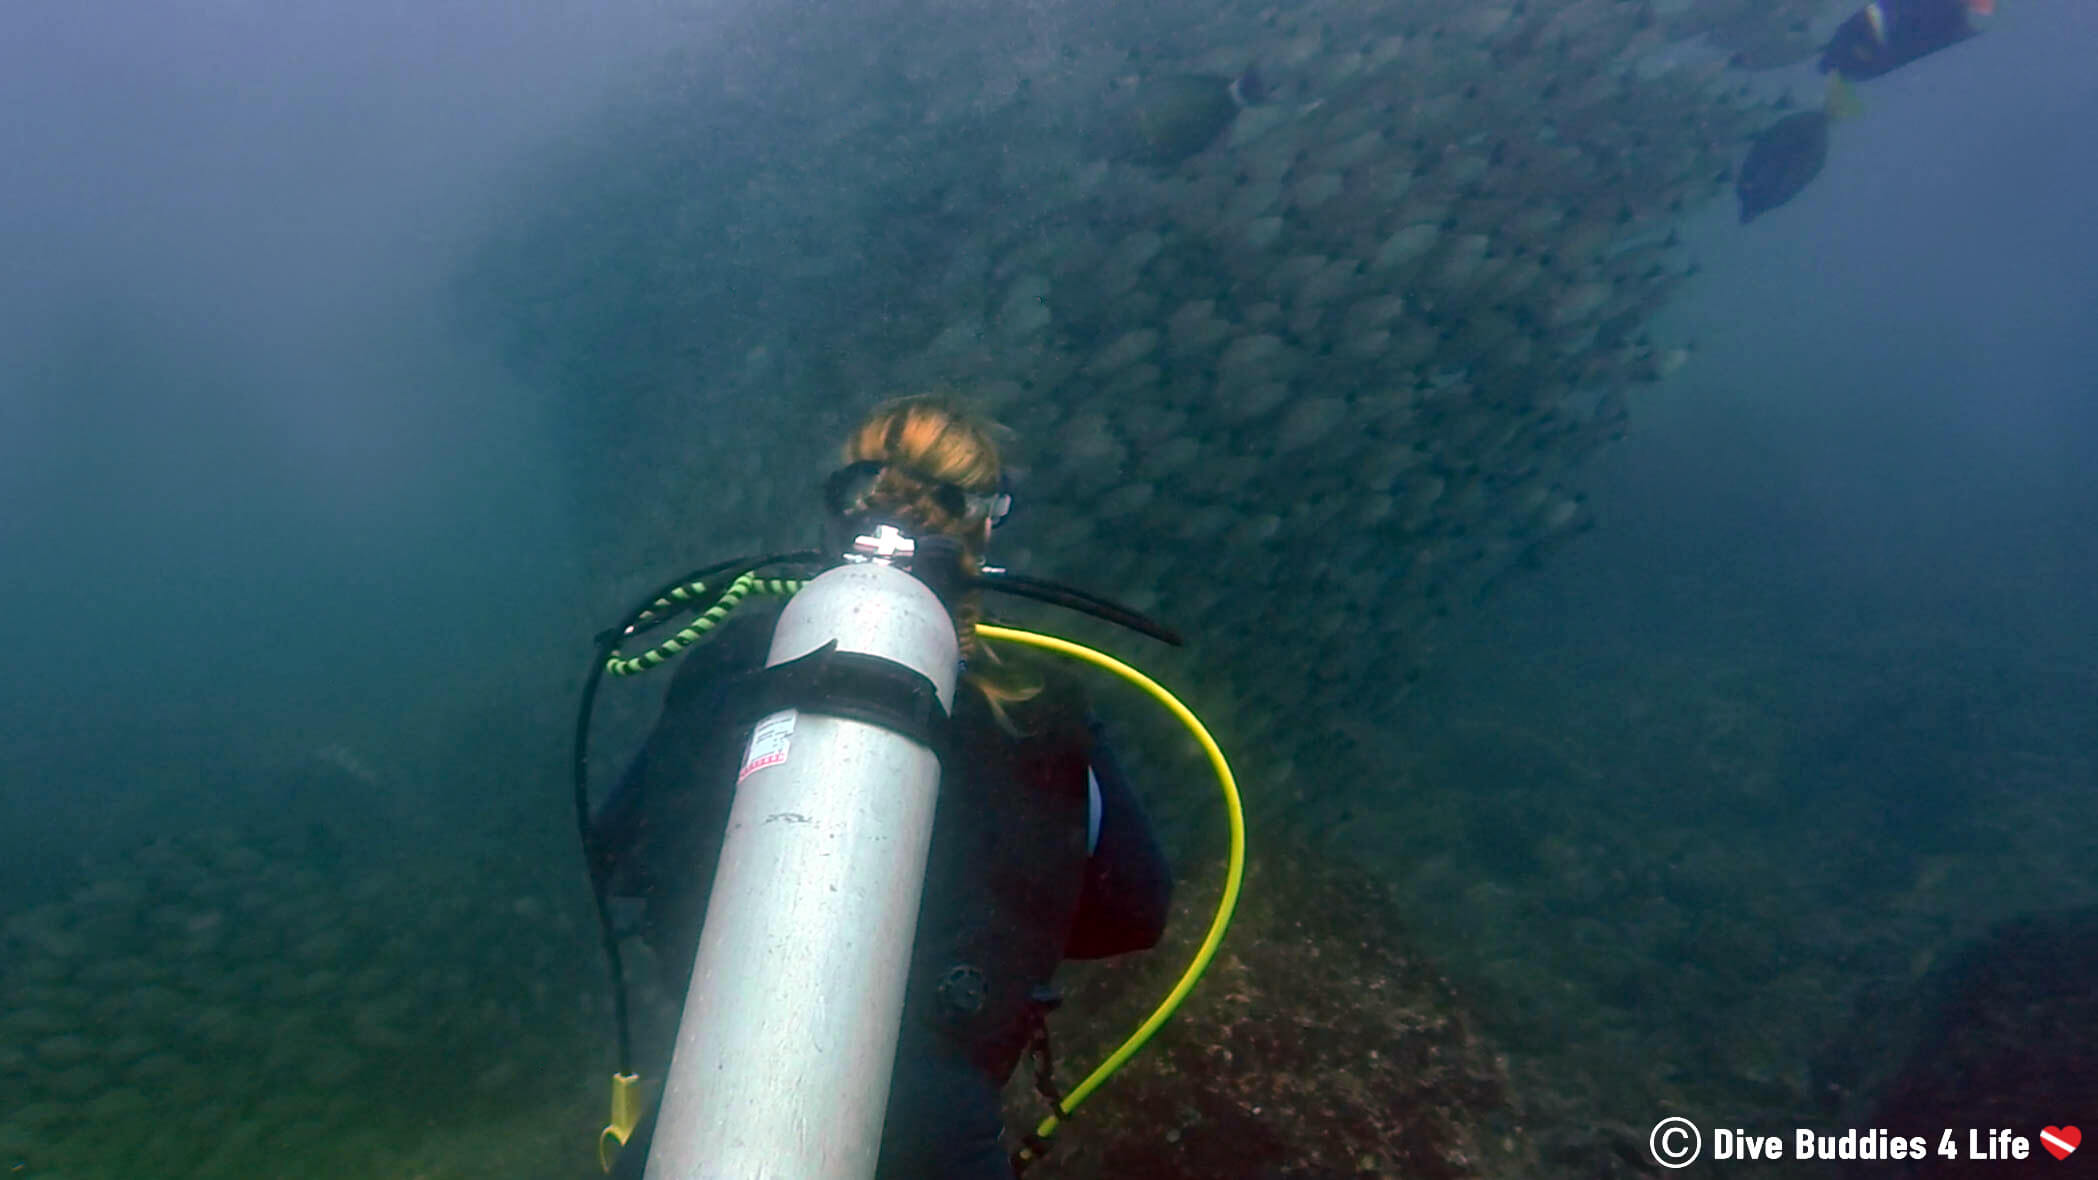 Ali Scuba Diving Into A Fish Tornado At The Catalina Islands In Costa Rica, Central America